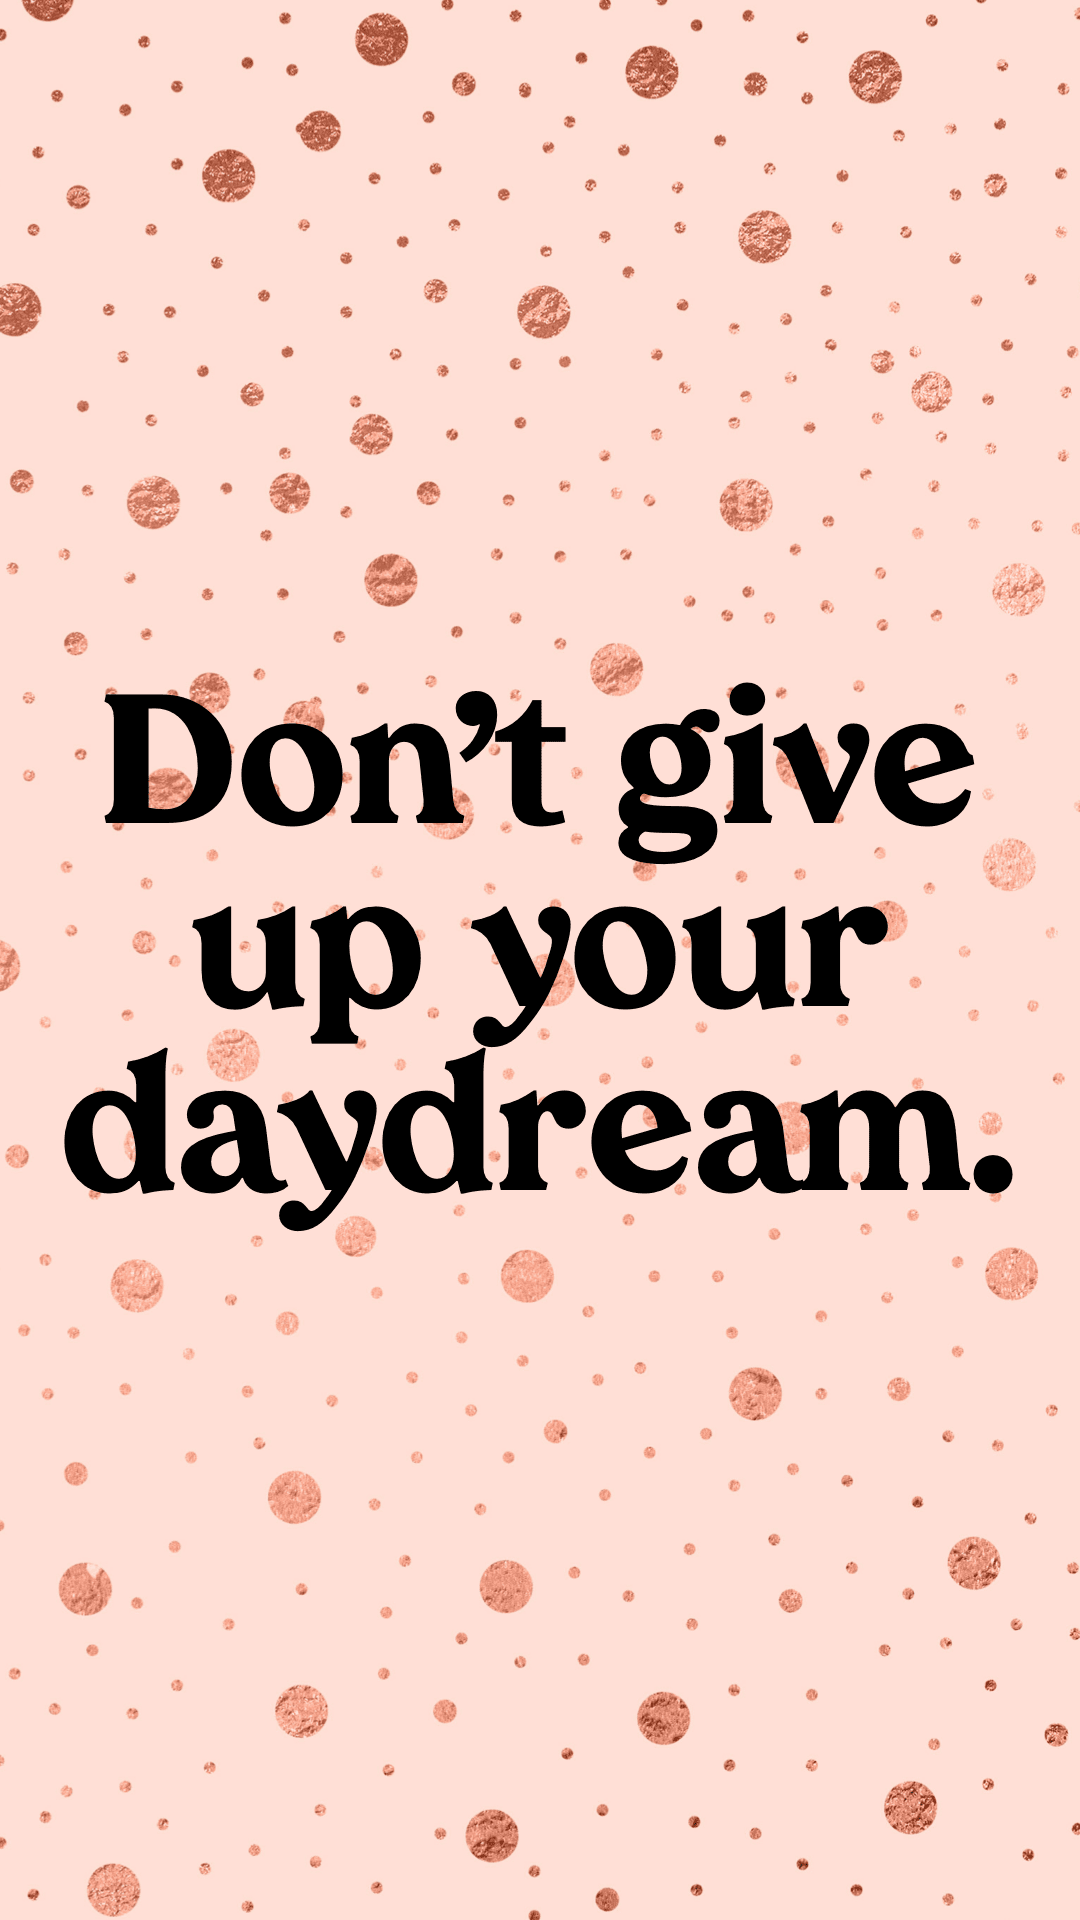 phone wallpaper, phone background, quotes to live by, free phone wallpapers, inspiring quotes, motivating quotes, girly quotes and inspirational quotes